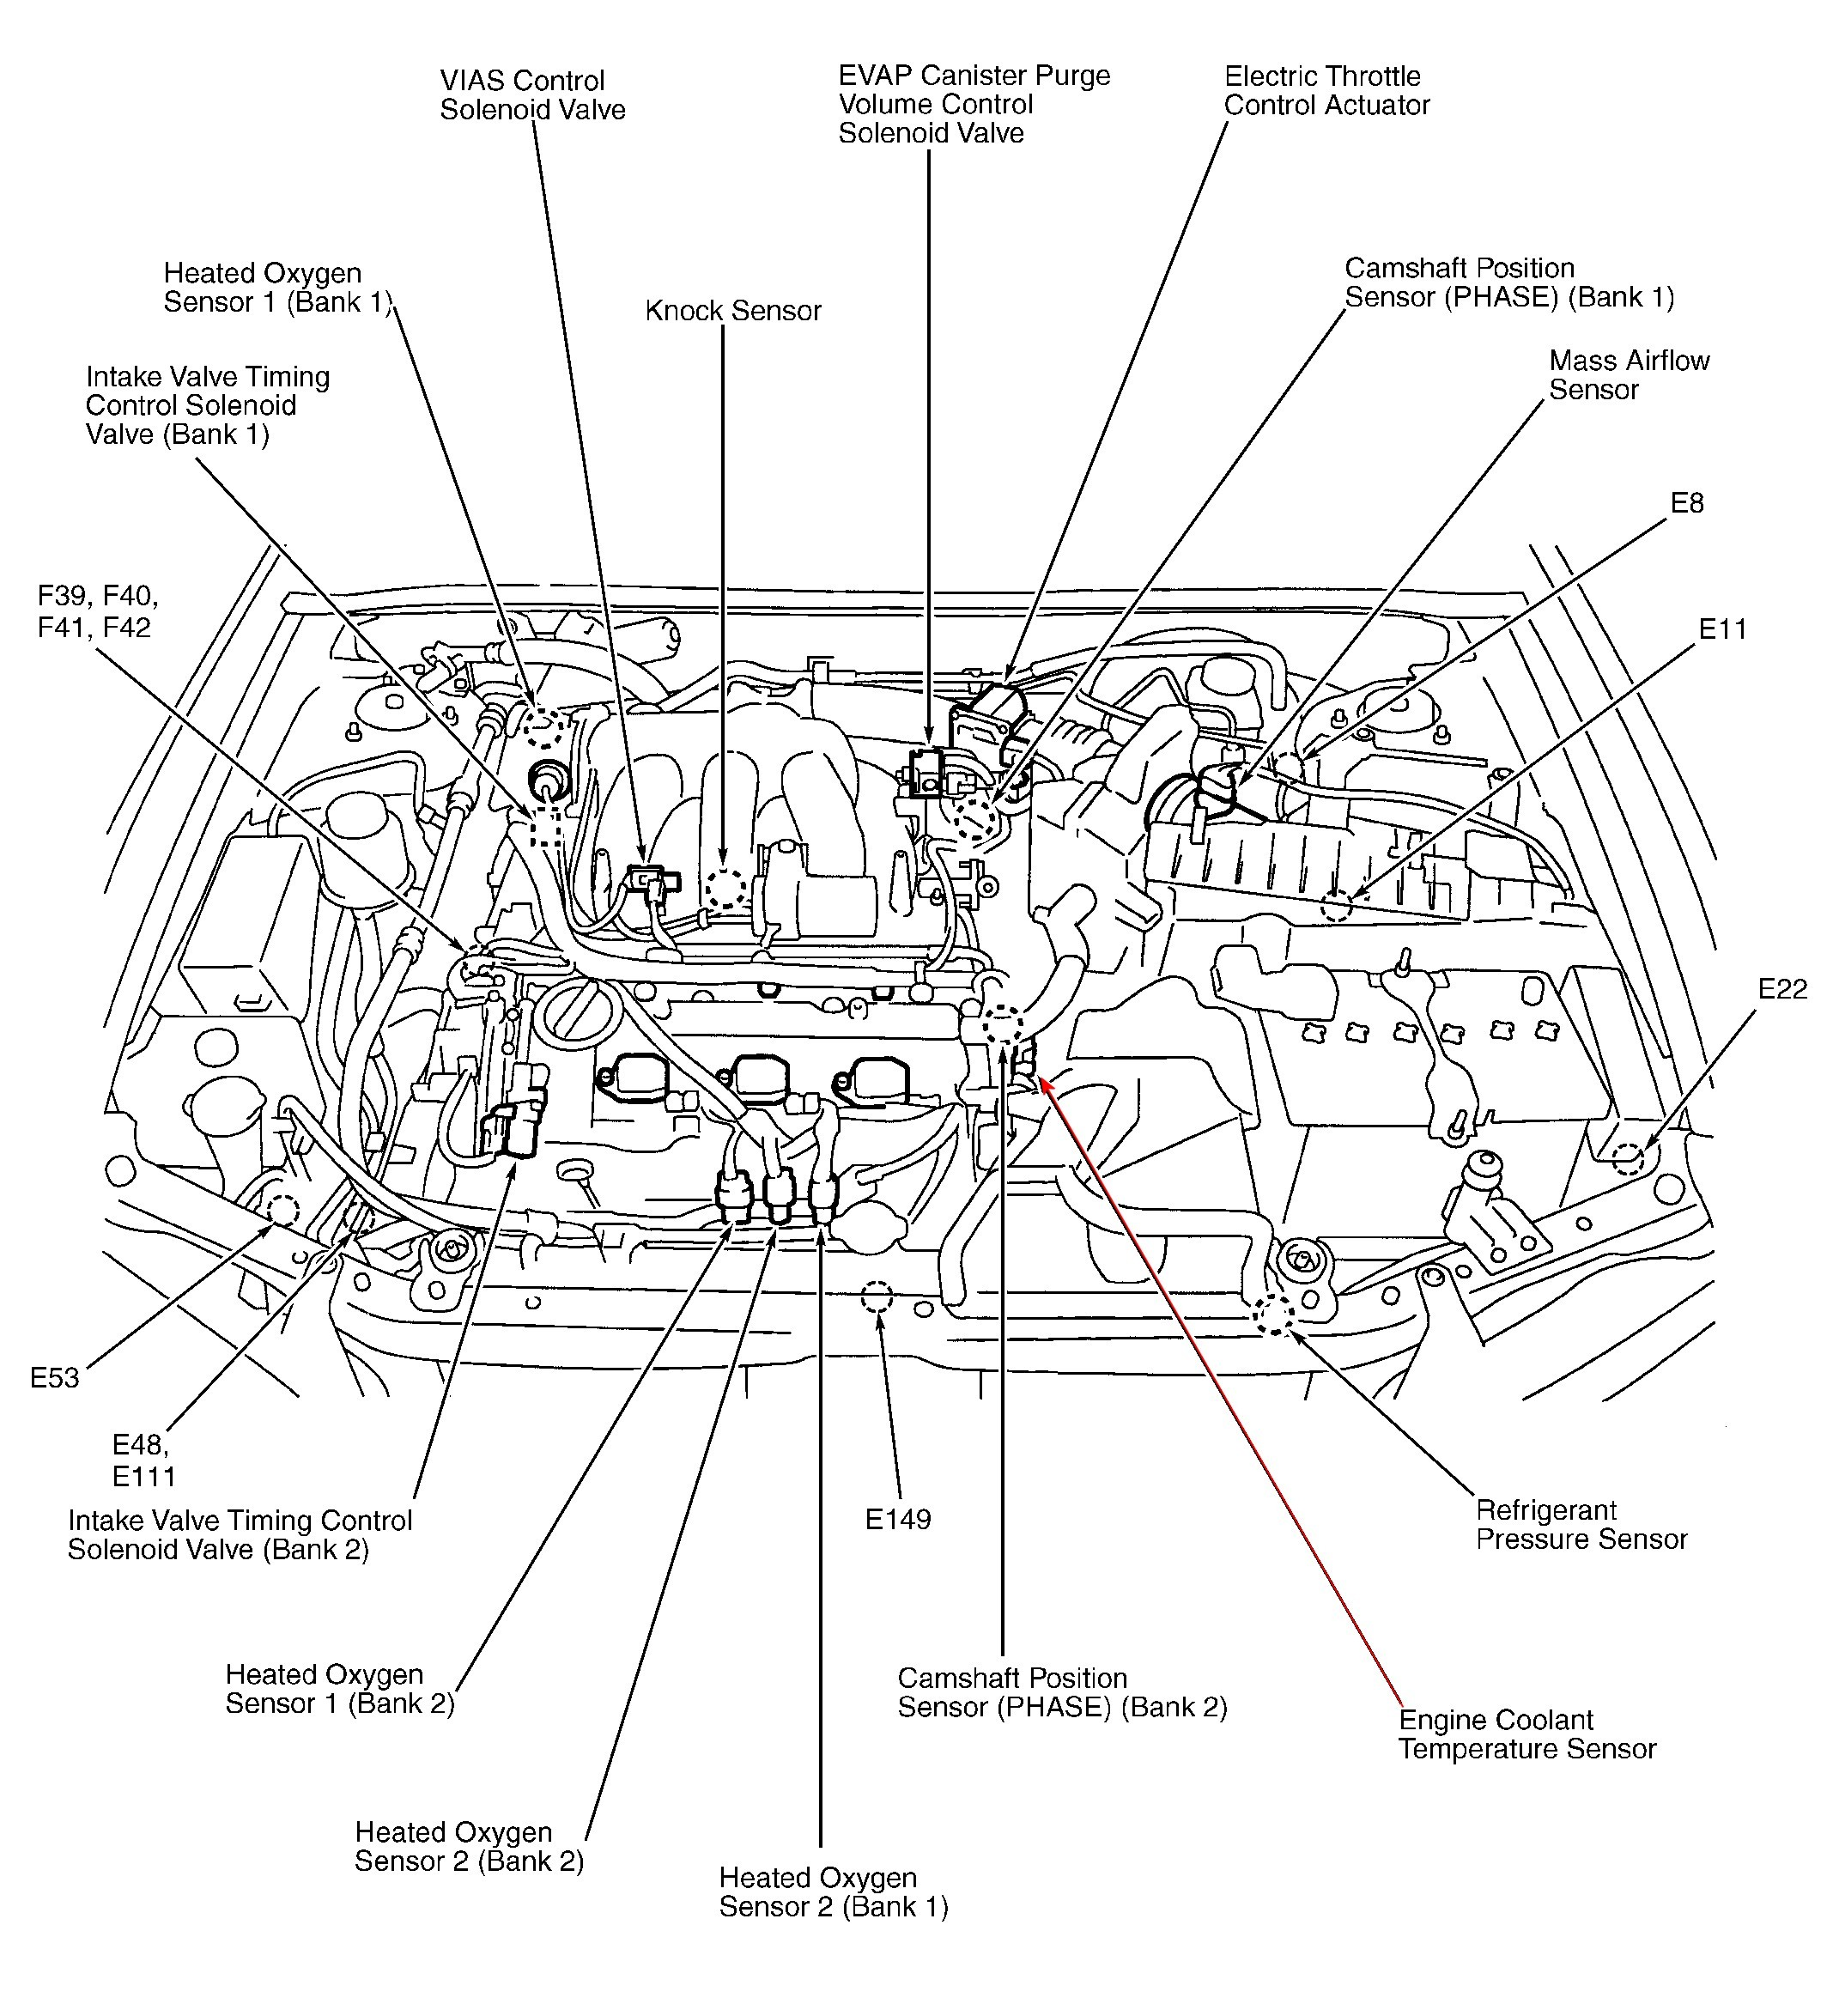 1999 Nissan Sentra Engine Schematics Archive Of Automotive Wiring Diagram For 1996 Quest Trusted Rh Dafpods Co